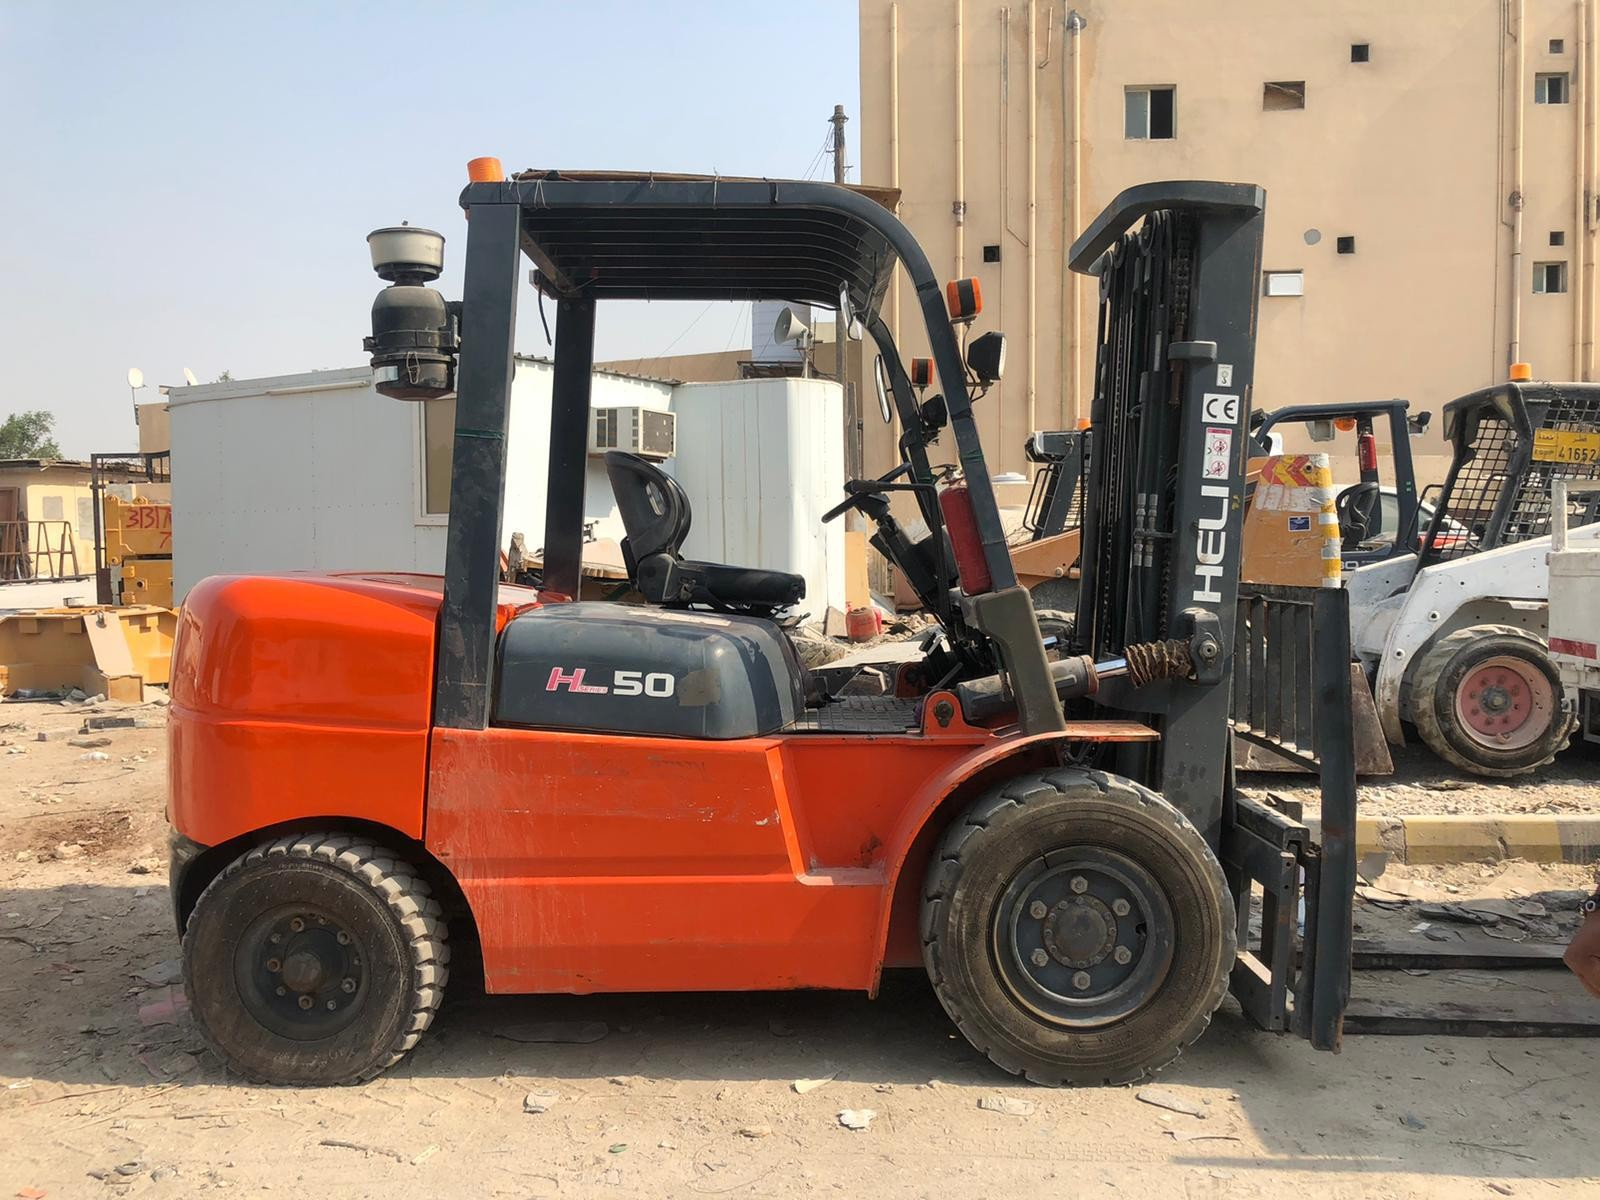 5-ton forklift with operator